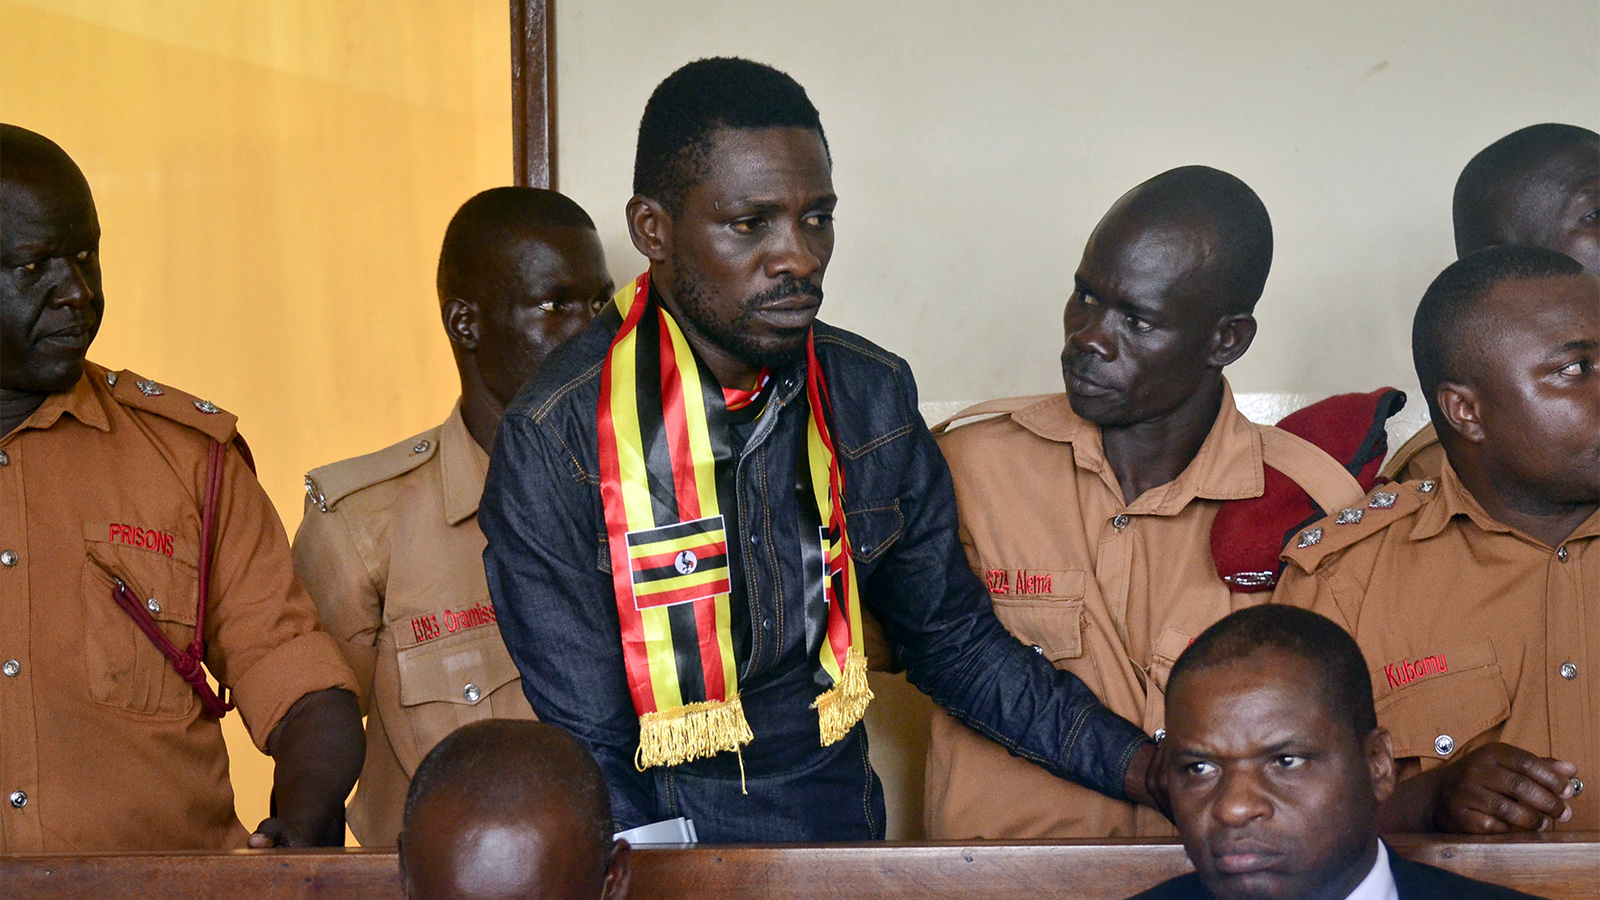 Ugandan pop star-turned-lawmaker Robert Kyagulanyi Ssentamu, also known as Bobi Wine, center, arrives at a magistrate's court in Gulu, northern Uganda, on Aug. 23, 2018. Wine, who opposes longtime President Yoweri Museveni, was charged with treason in the civilian court in Gulu, minutes after a military court dropped weapons charges. (AP Photo)